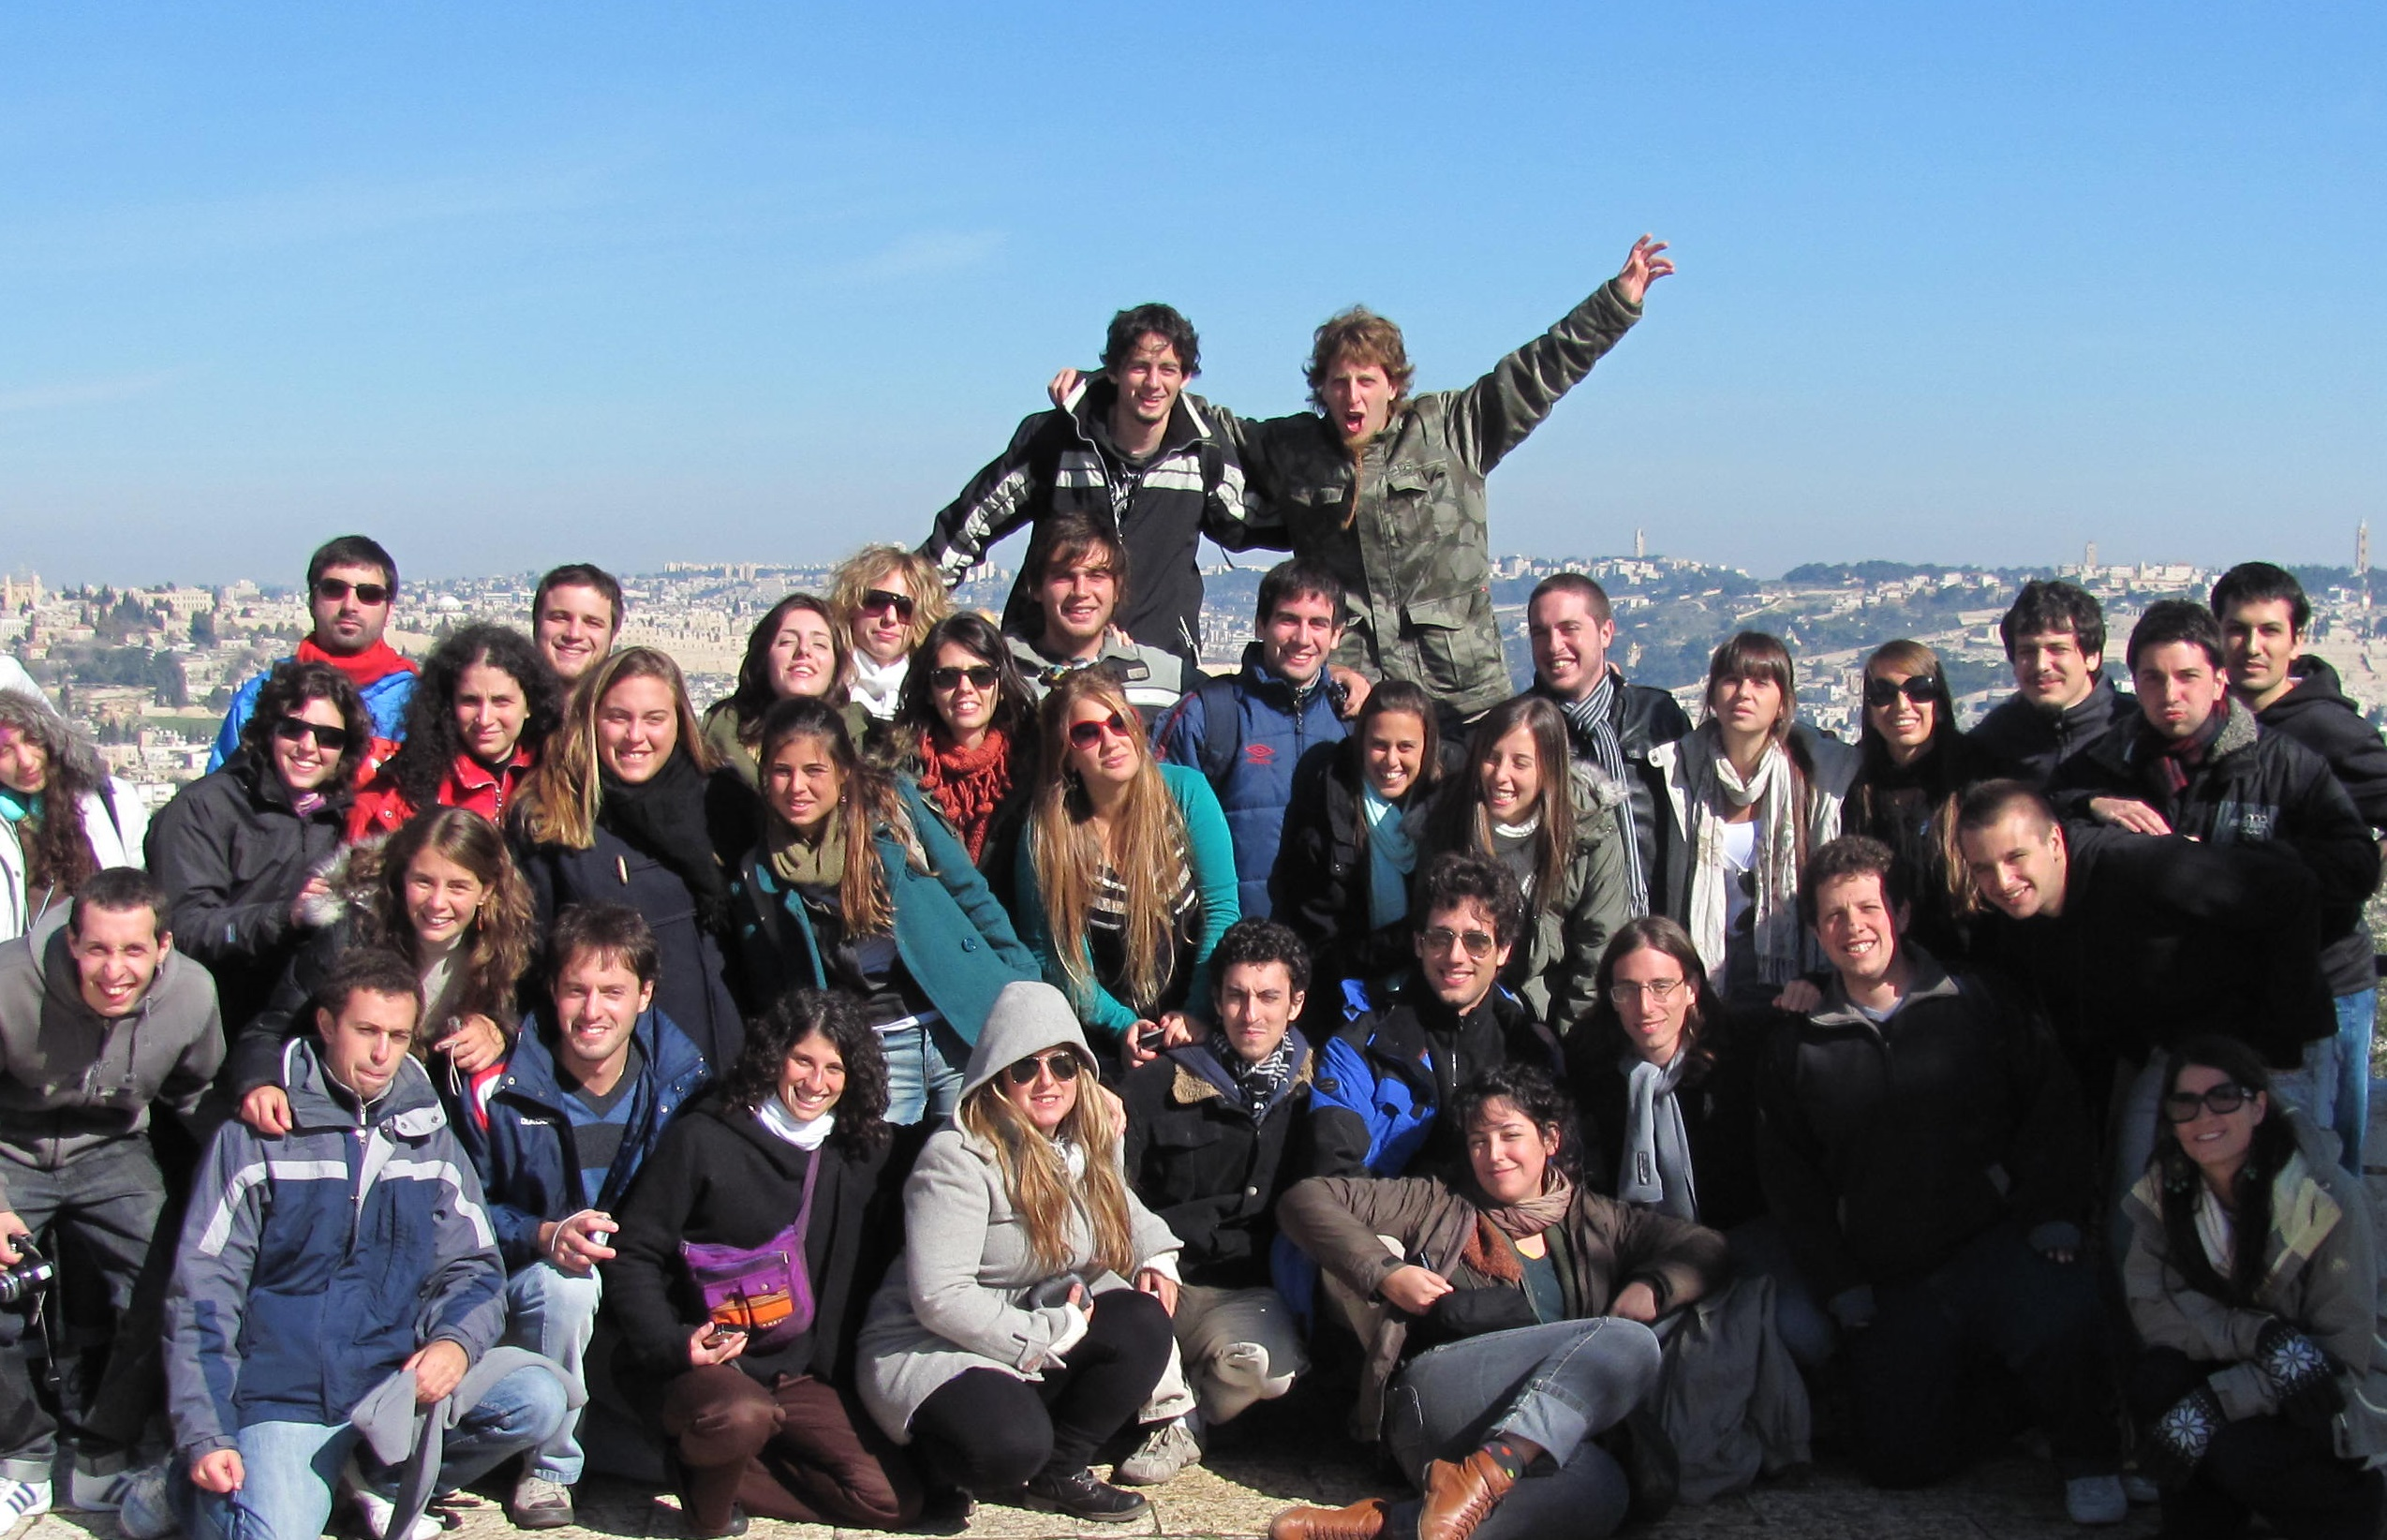 Grupo_de_Taglit by Wikicommons user Luqux. Birthright Israel Taglit group in Israel.